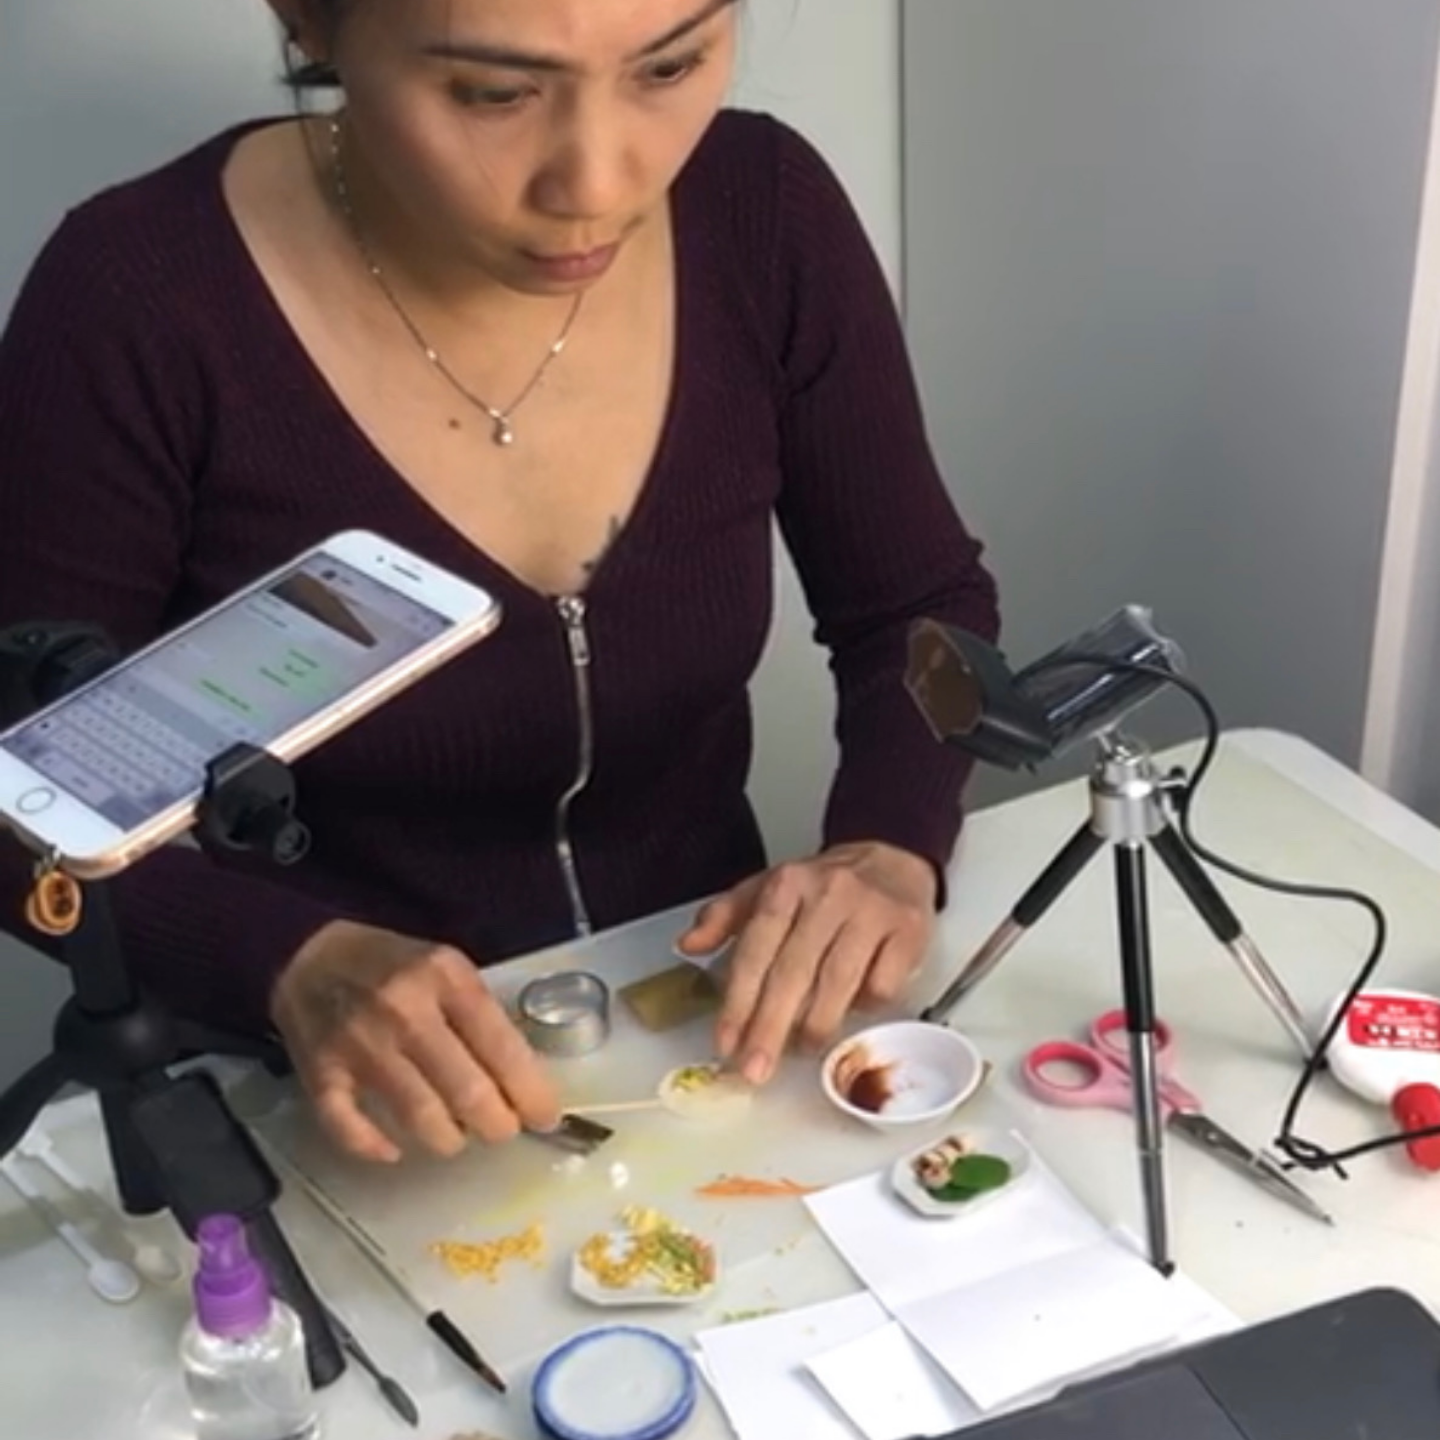 Workshop - Miniature Food Sculpting Popiah